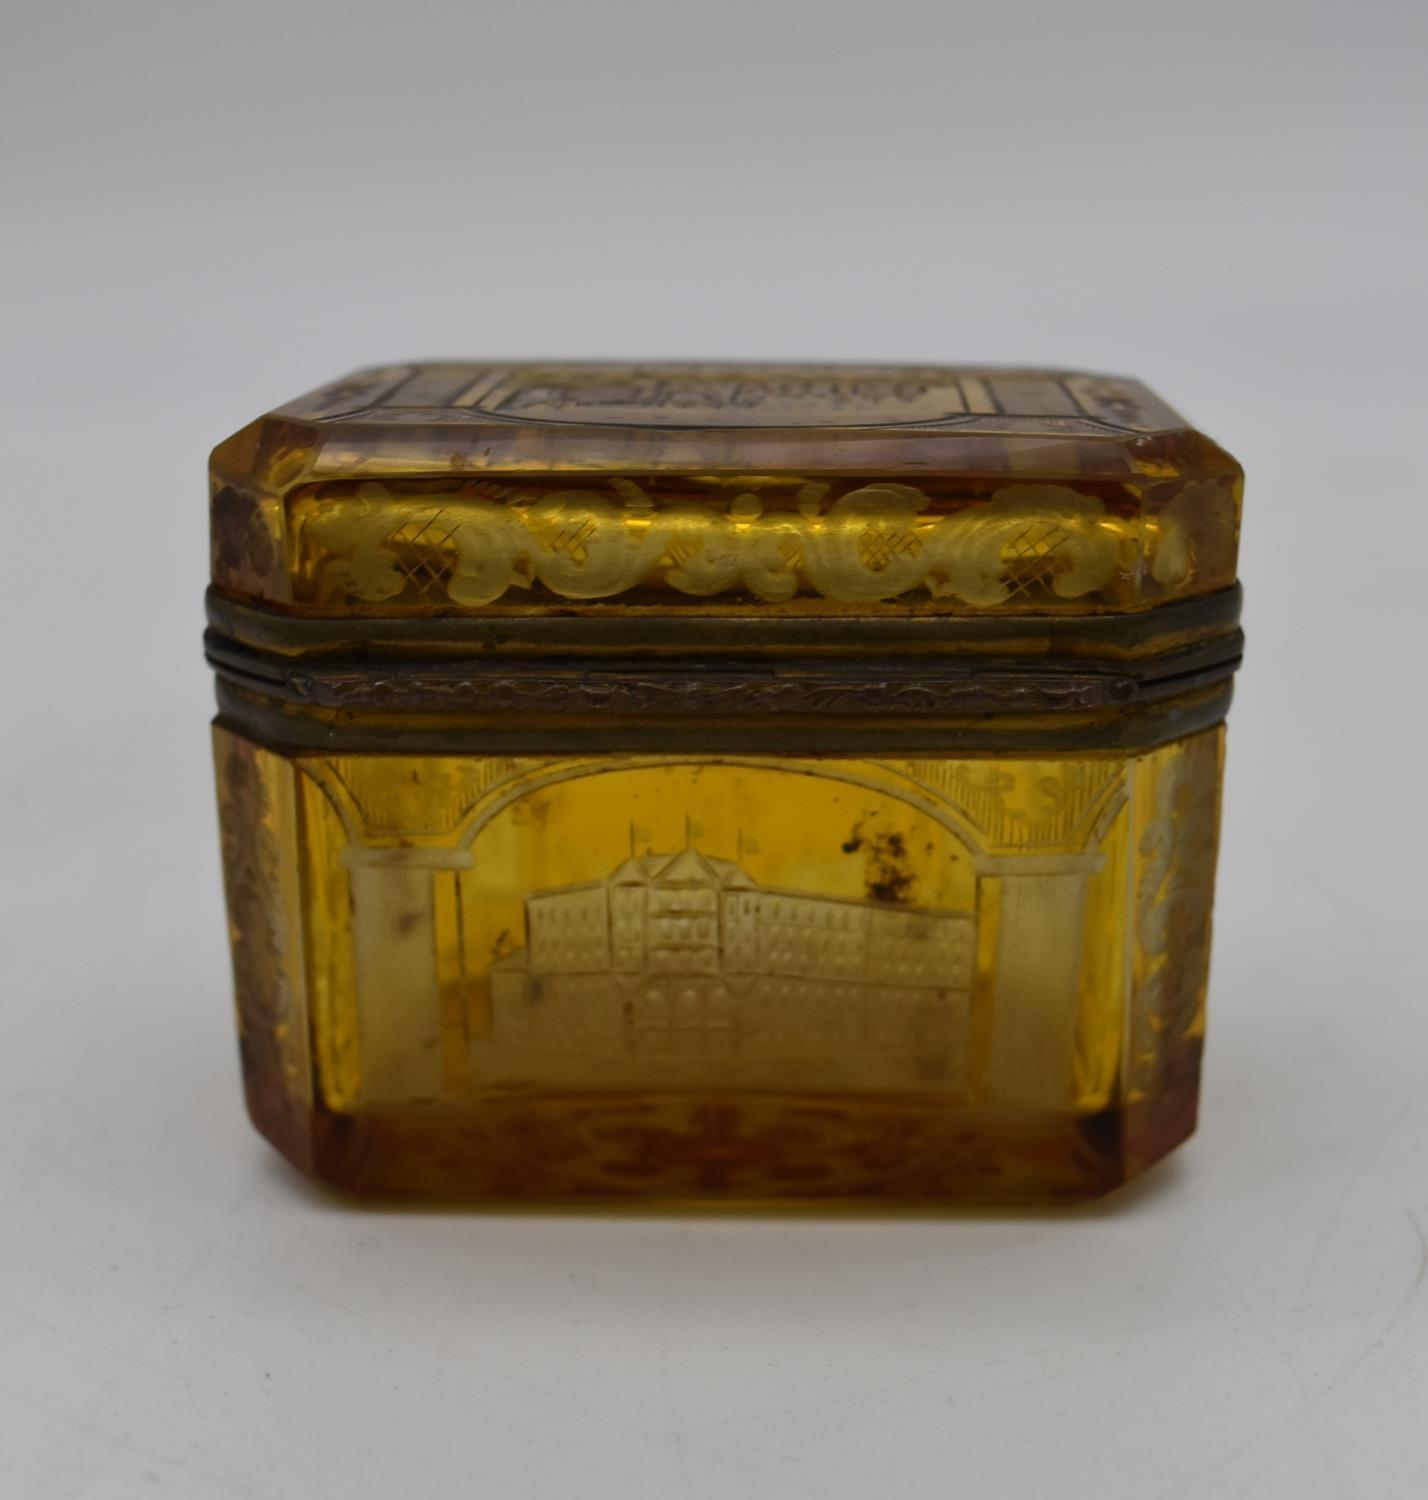 A small 19th century engraved amber glass and ormolu mounted box. H.7x8cm - Image 3 of 4